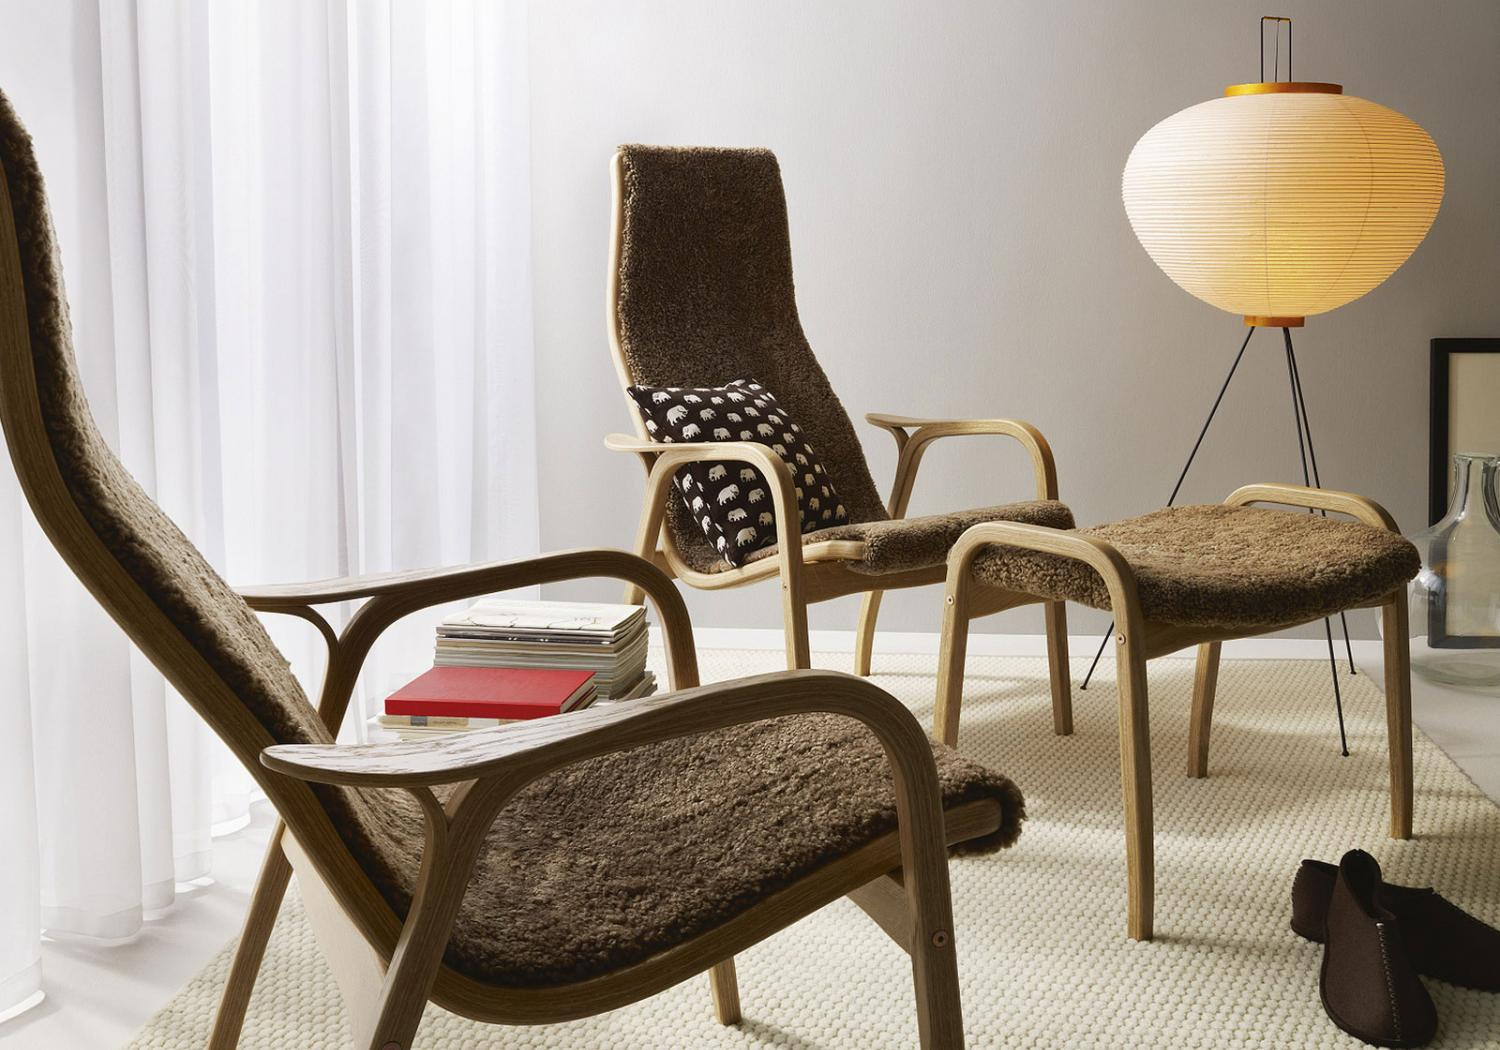 The Lamino armchair, the Yngve Ektröm classic, turns 50